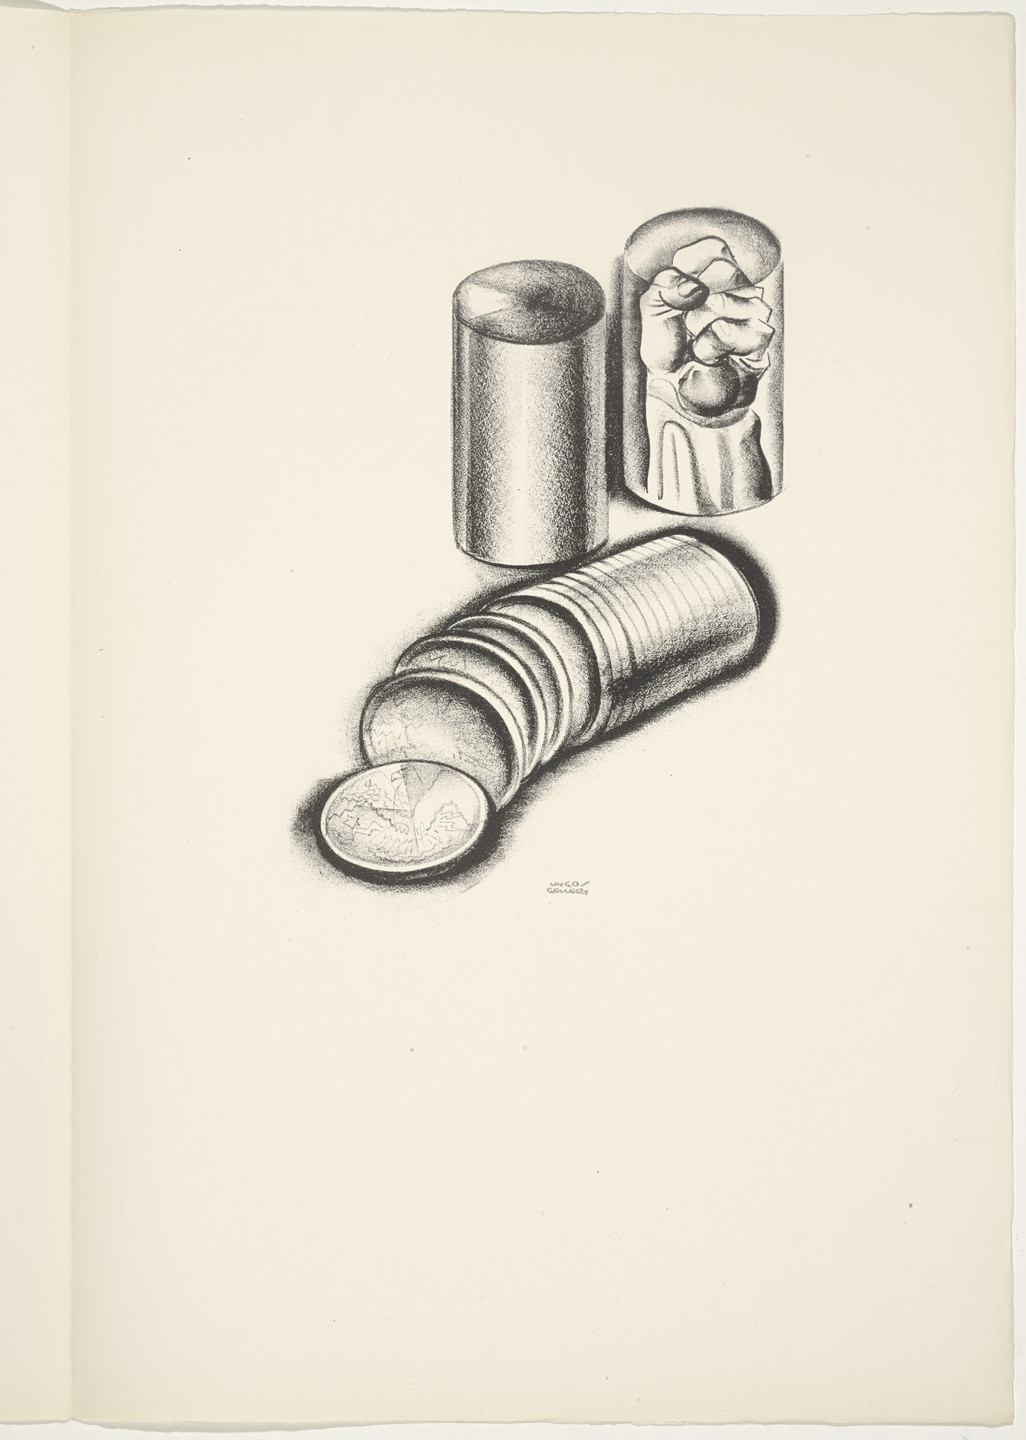 Hugo Gellert. Plate (folio 56) from 'Capital' in Pictures. 1933